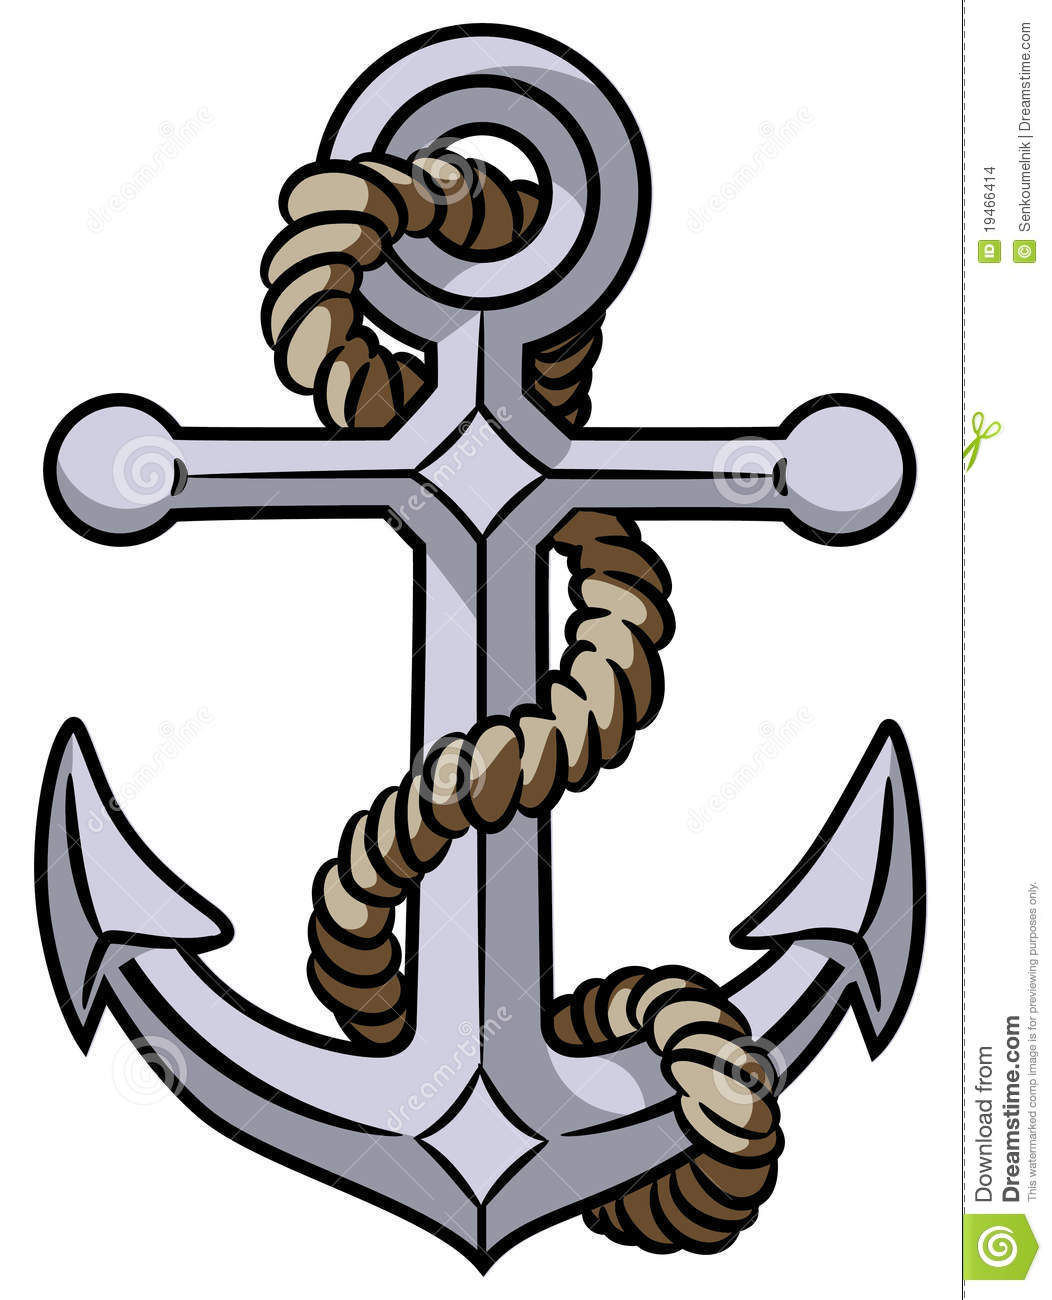 Navy clipart anchor rope #10